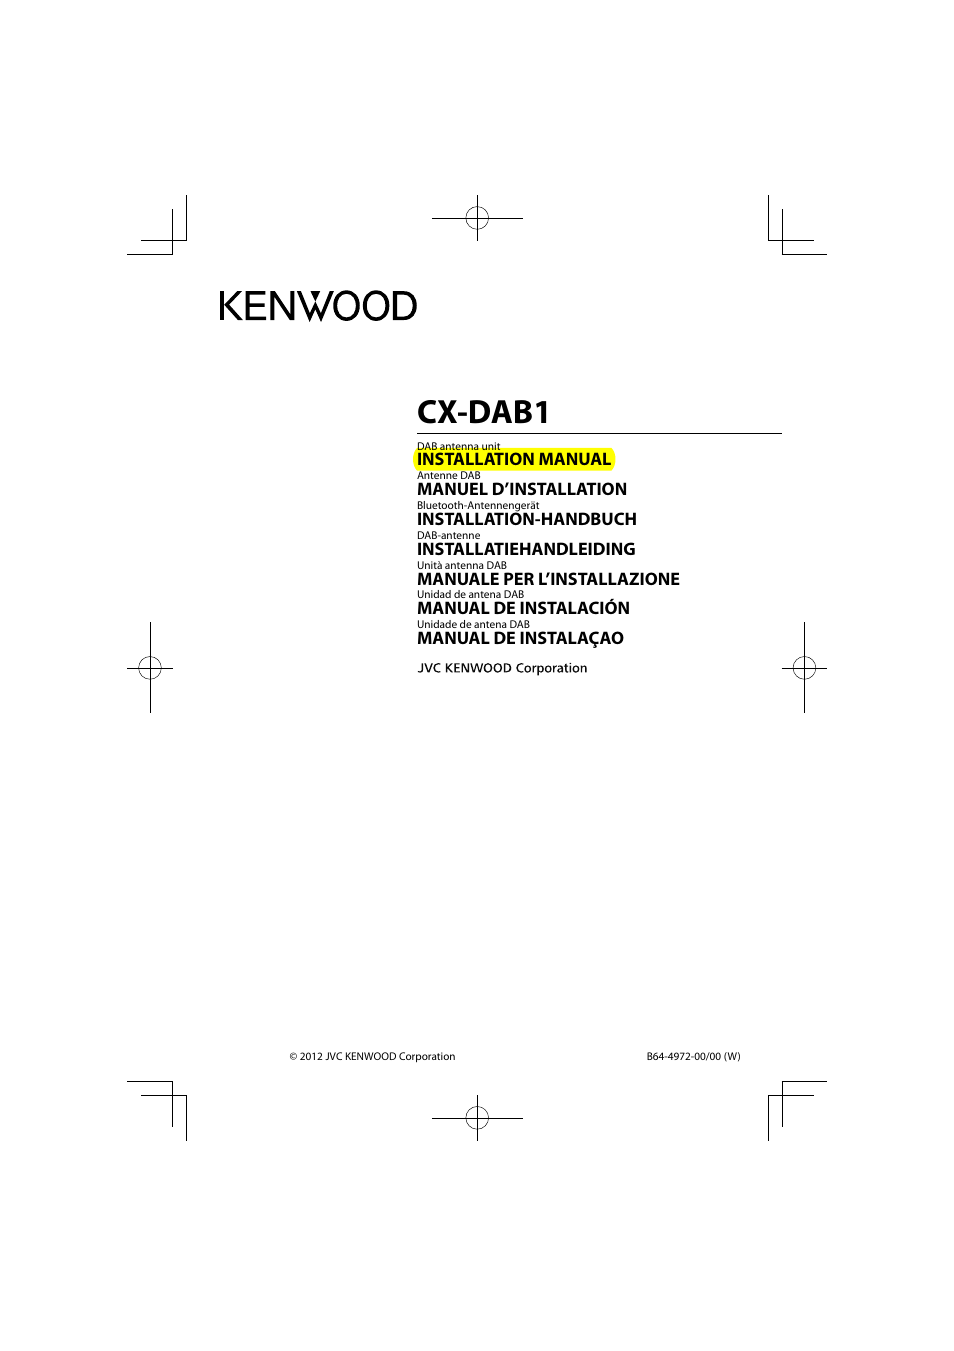 Kenwood cx dab1 user manual 5 pages sciox Gallery